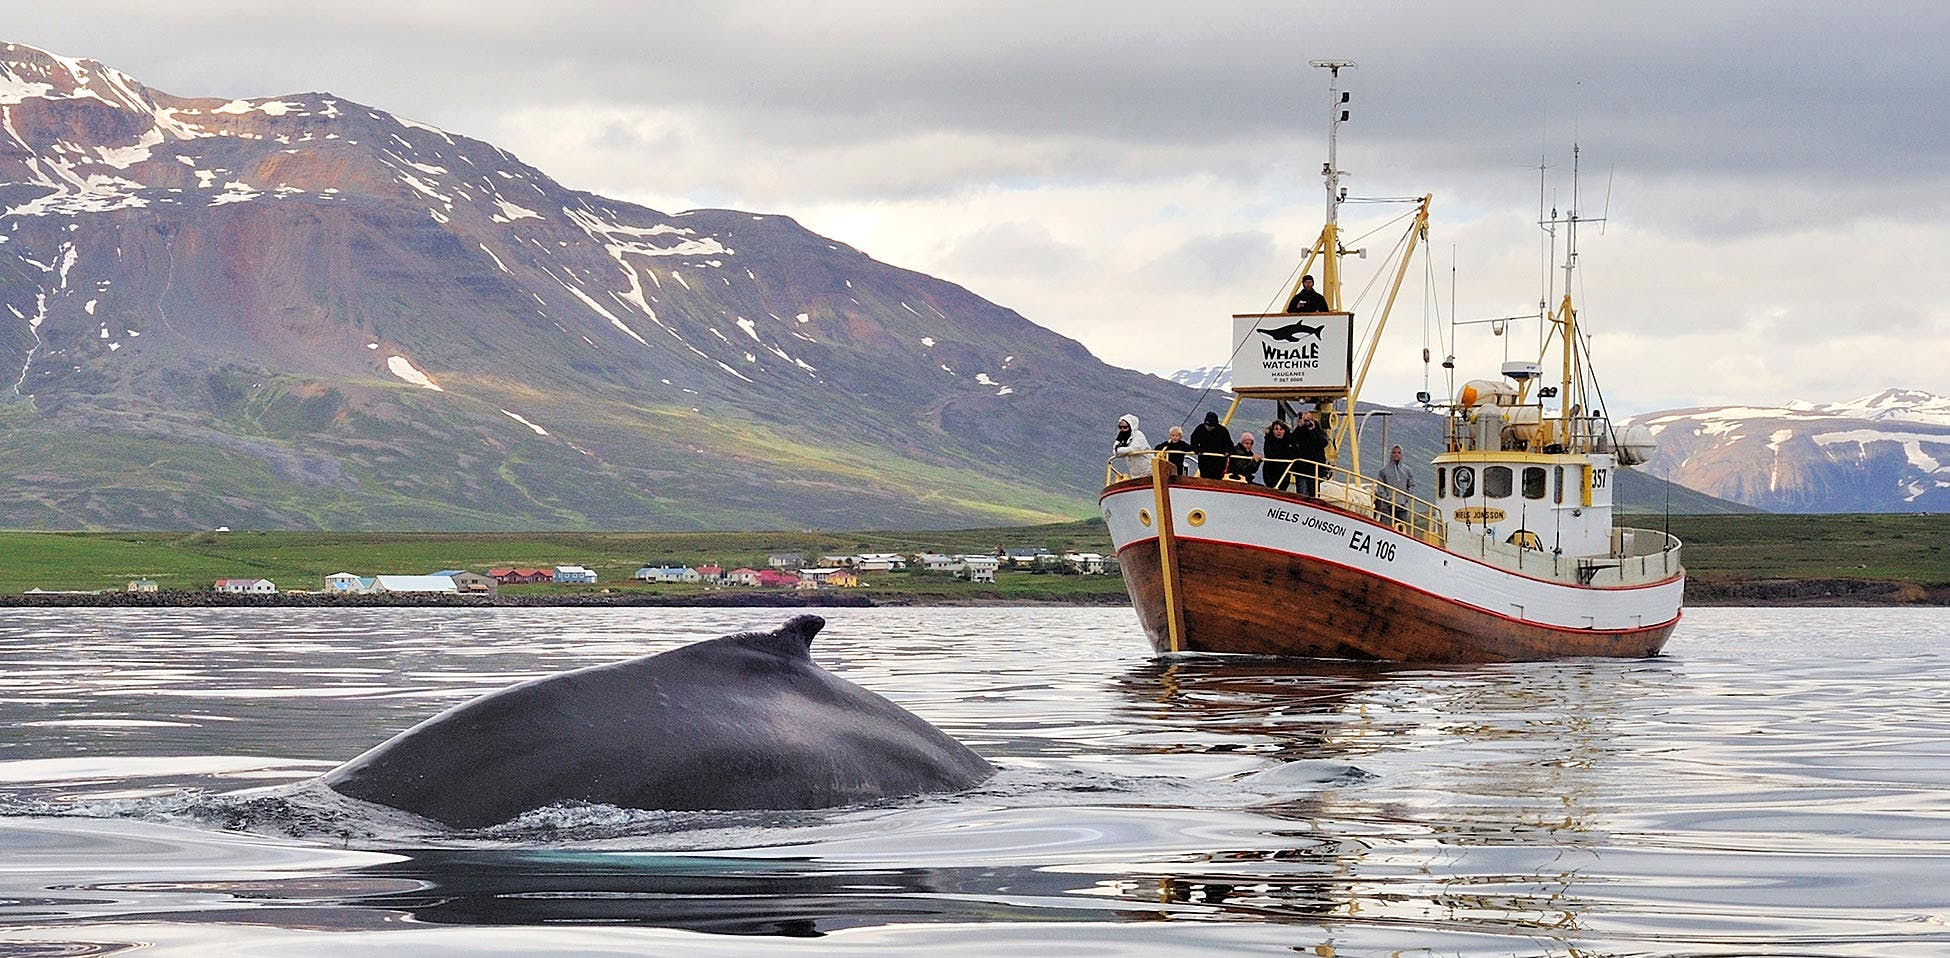 Whale Watching and Sea Angling | Guide to Iceland